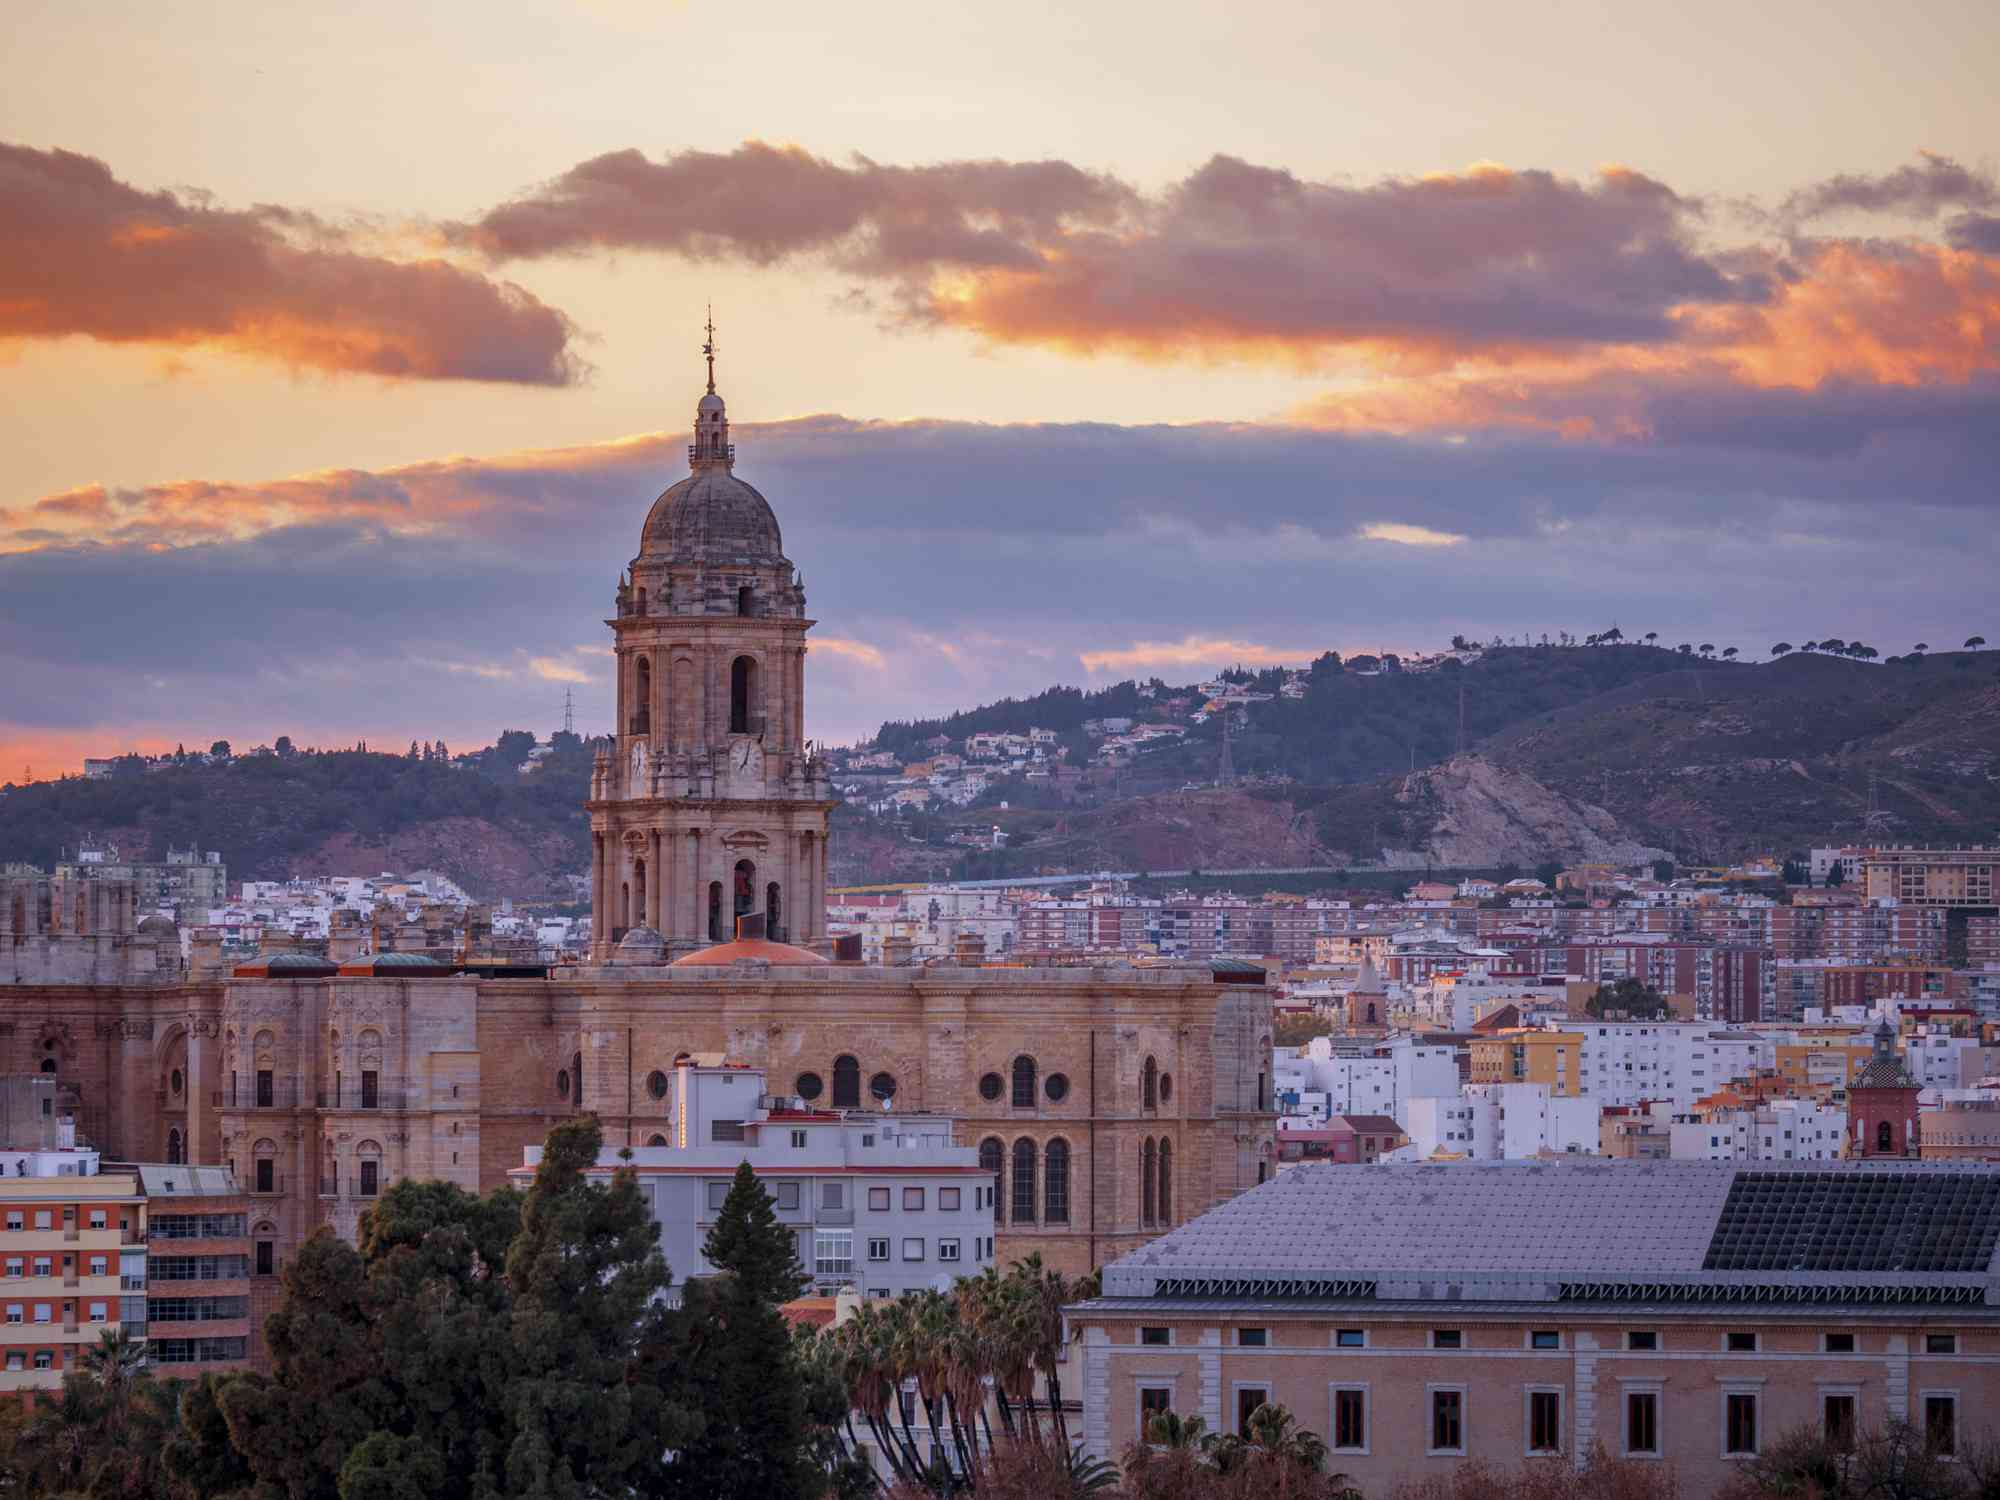 dome of cathedral in Malaga rises above the city in Spain as the sun begins to set